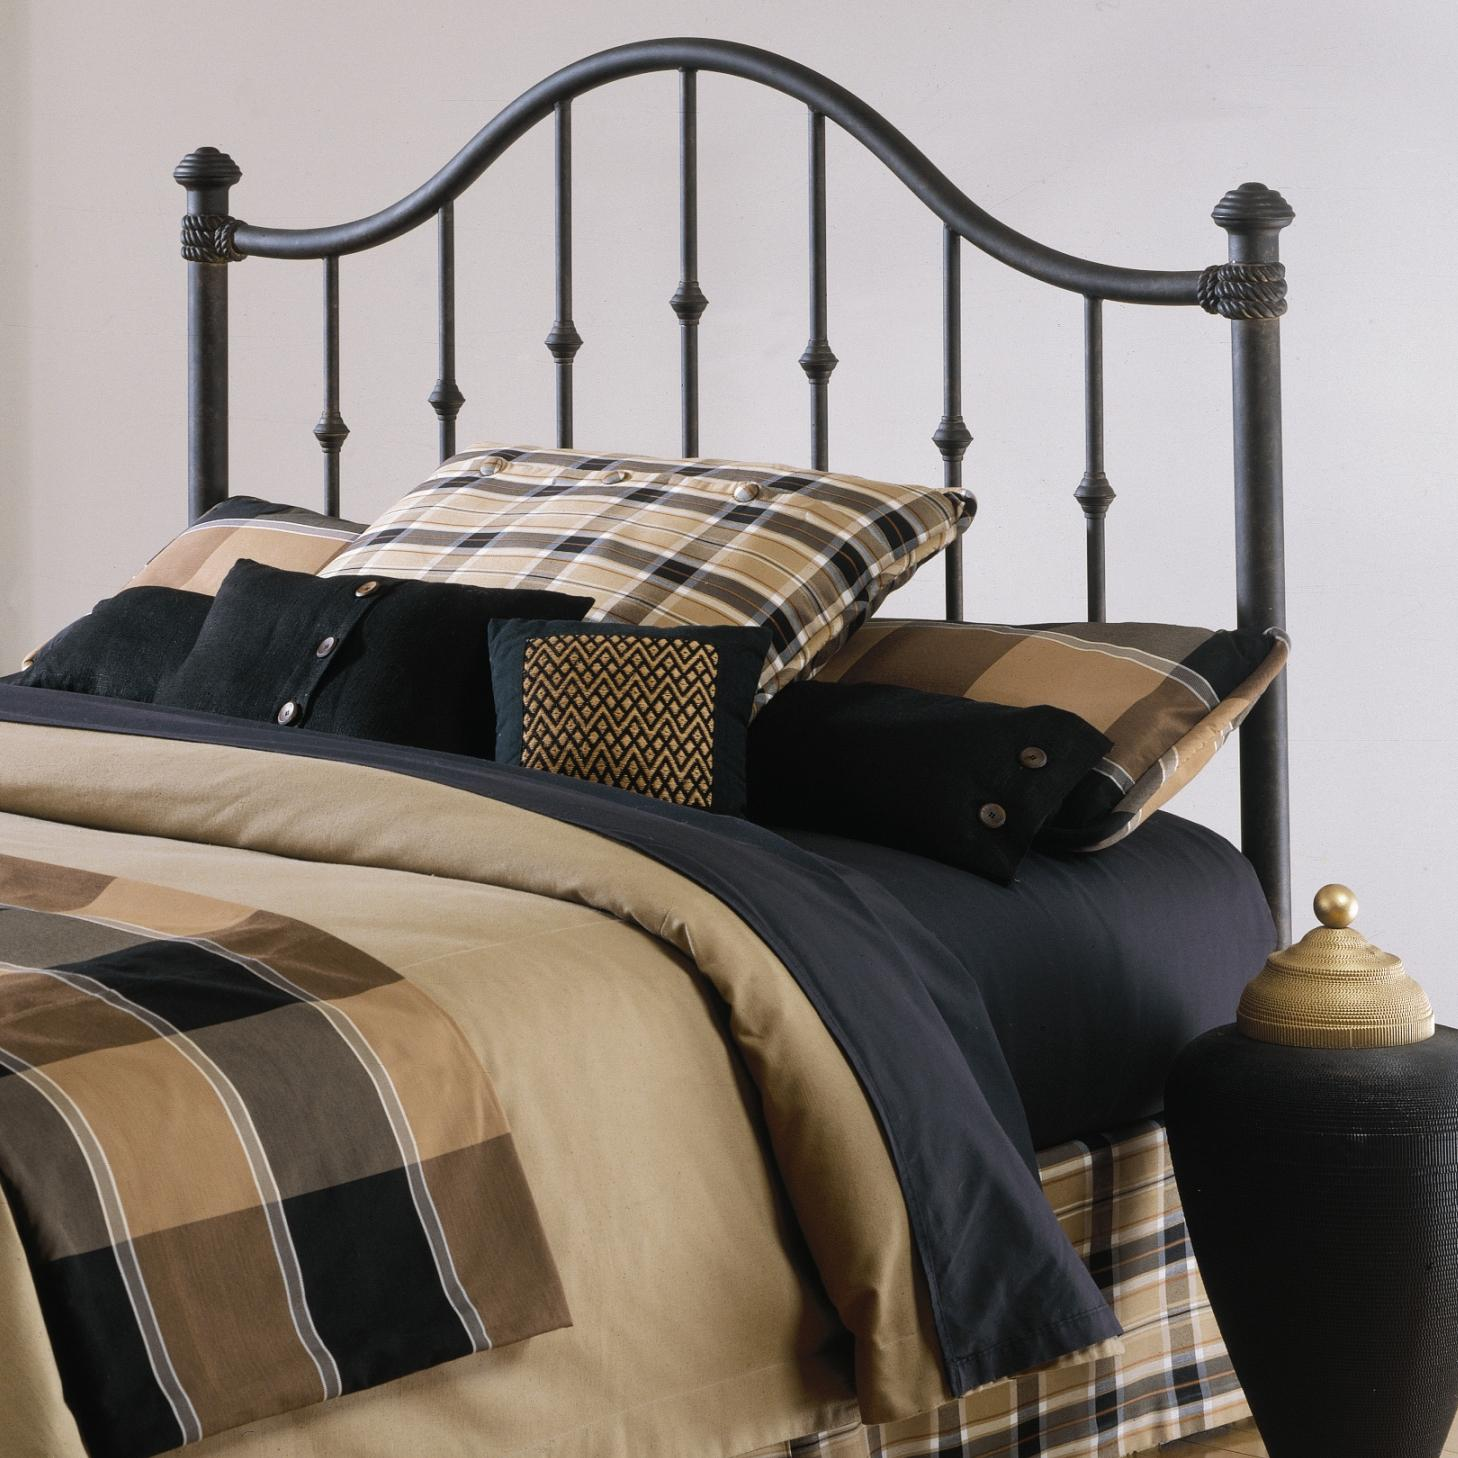 Excellent Trafalgar King Metal Headboard By Largo At Lindys Furniture Company Home Interior And Landscaping Eliaenasavecom